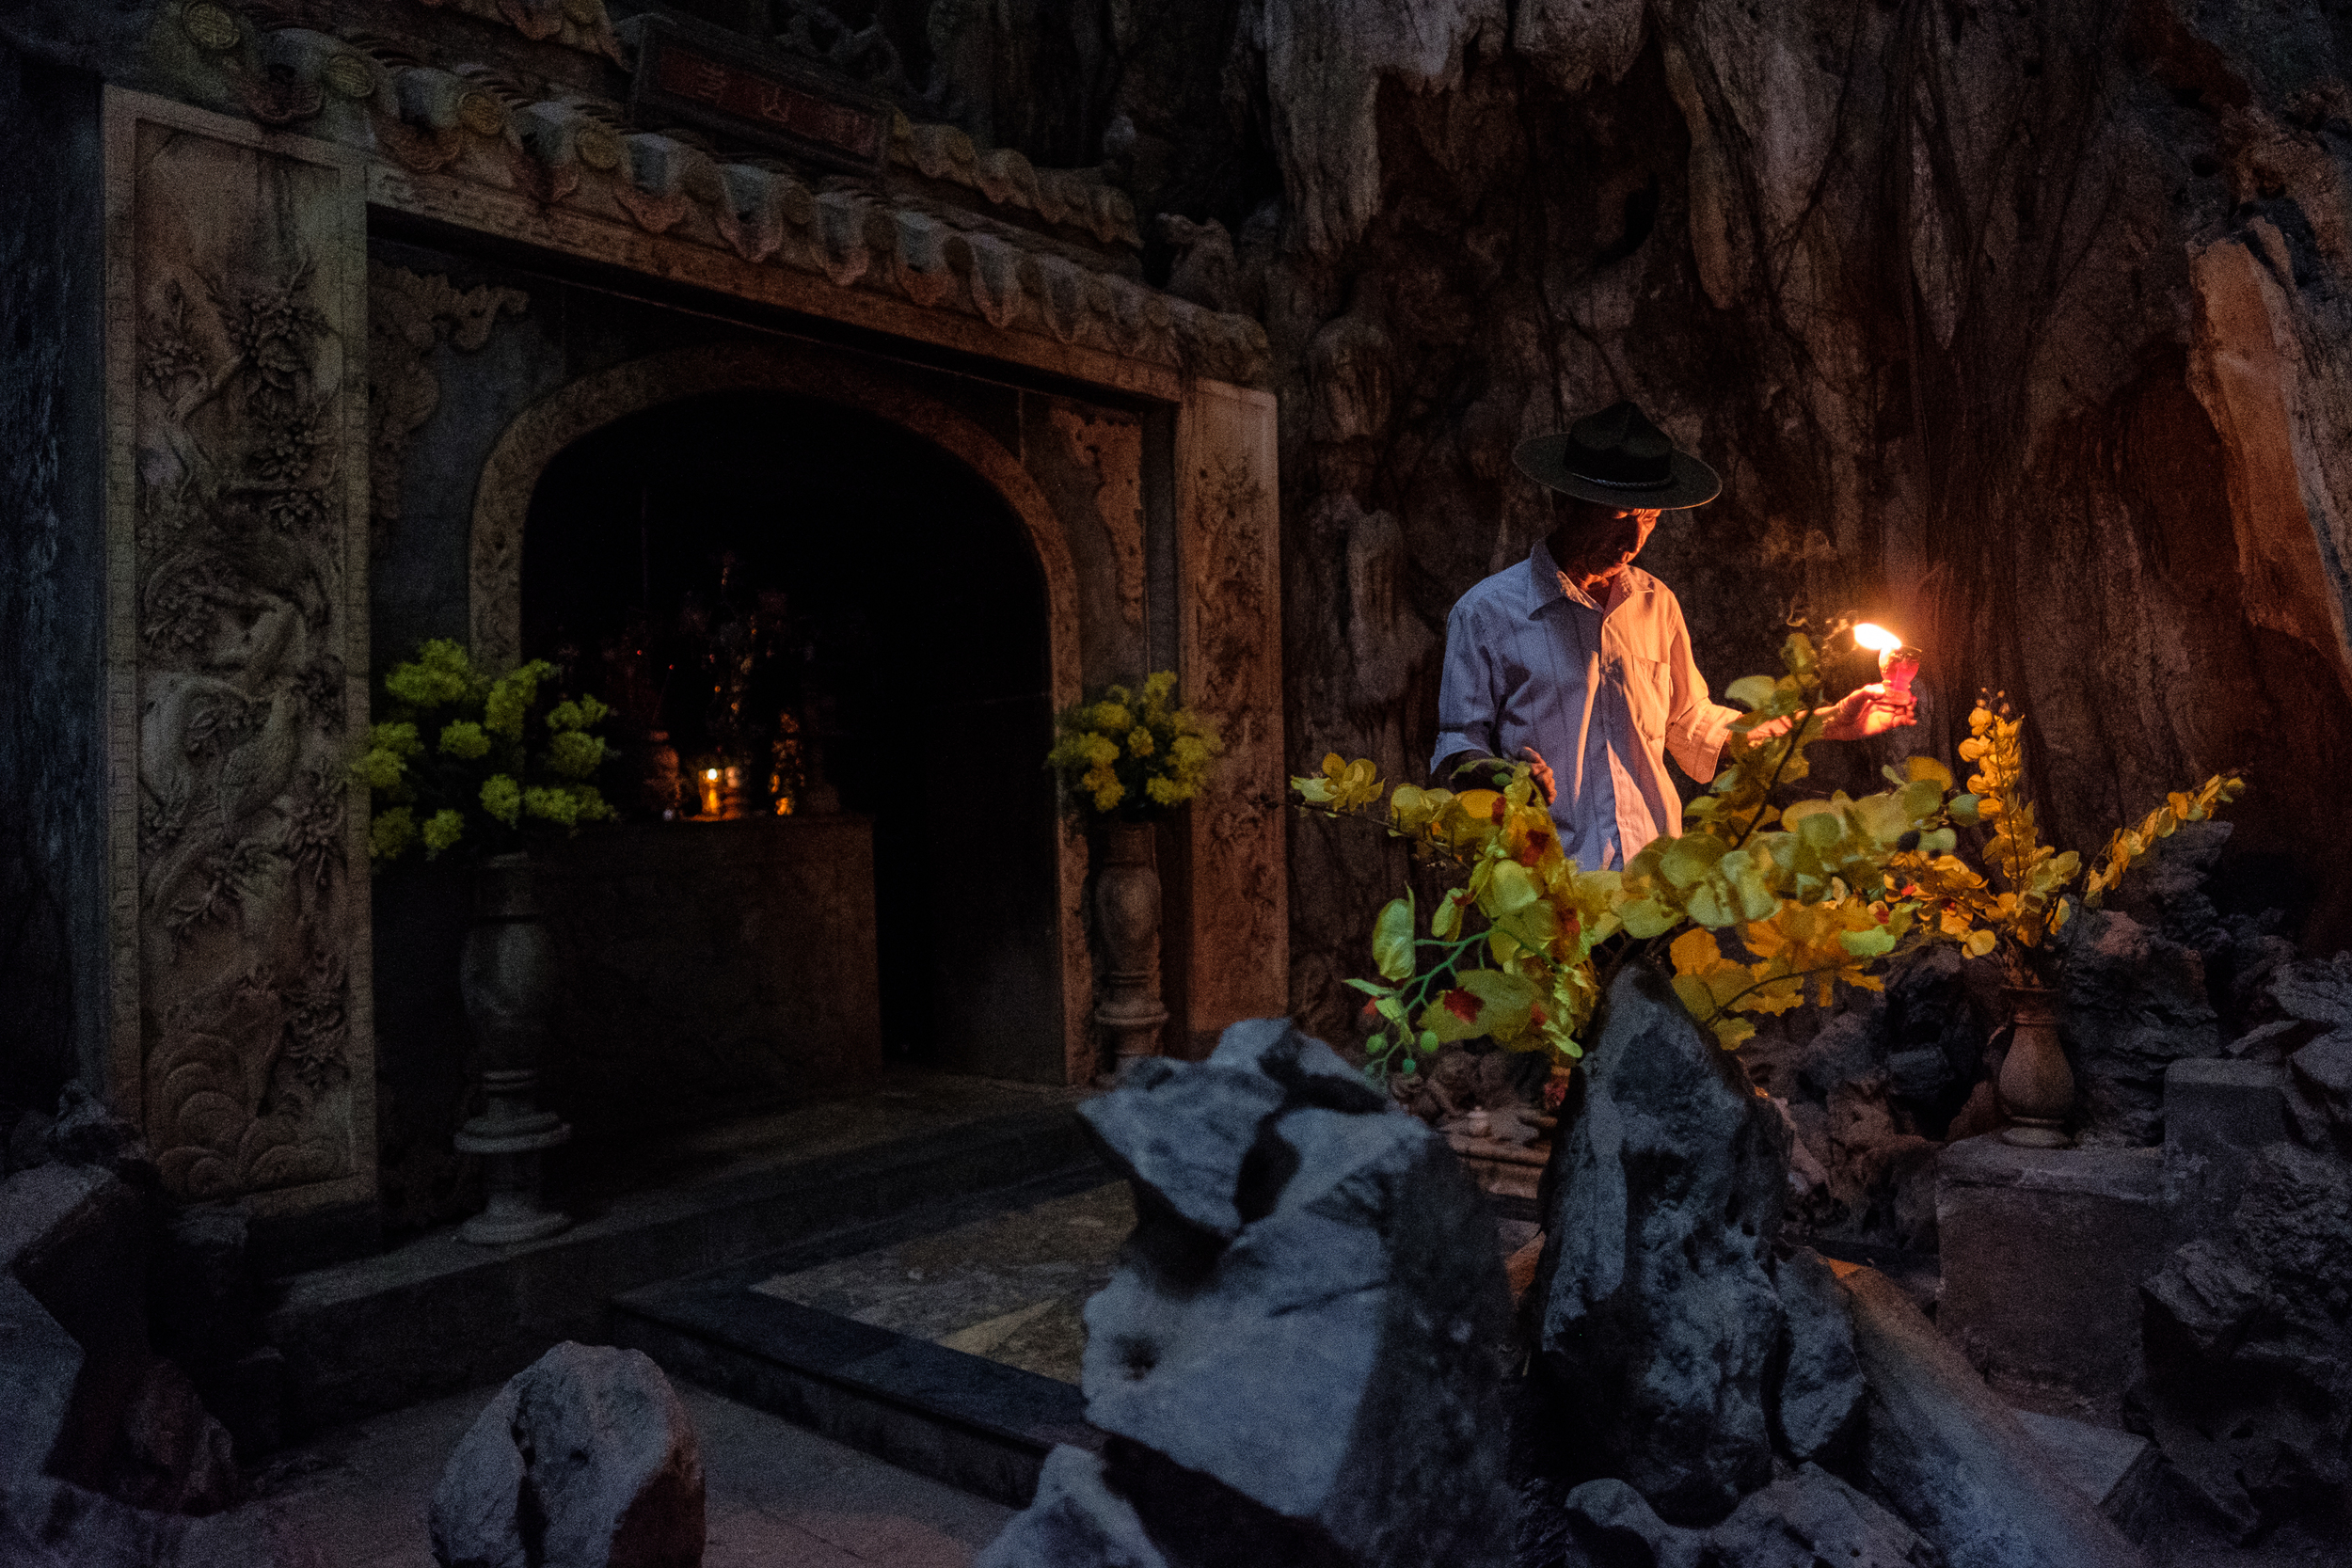 Lighting the shrines in the largest cave, Am Phu.